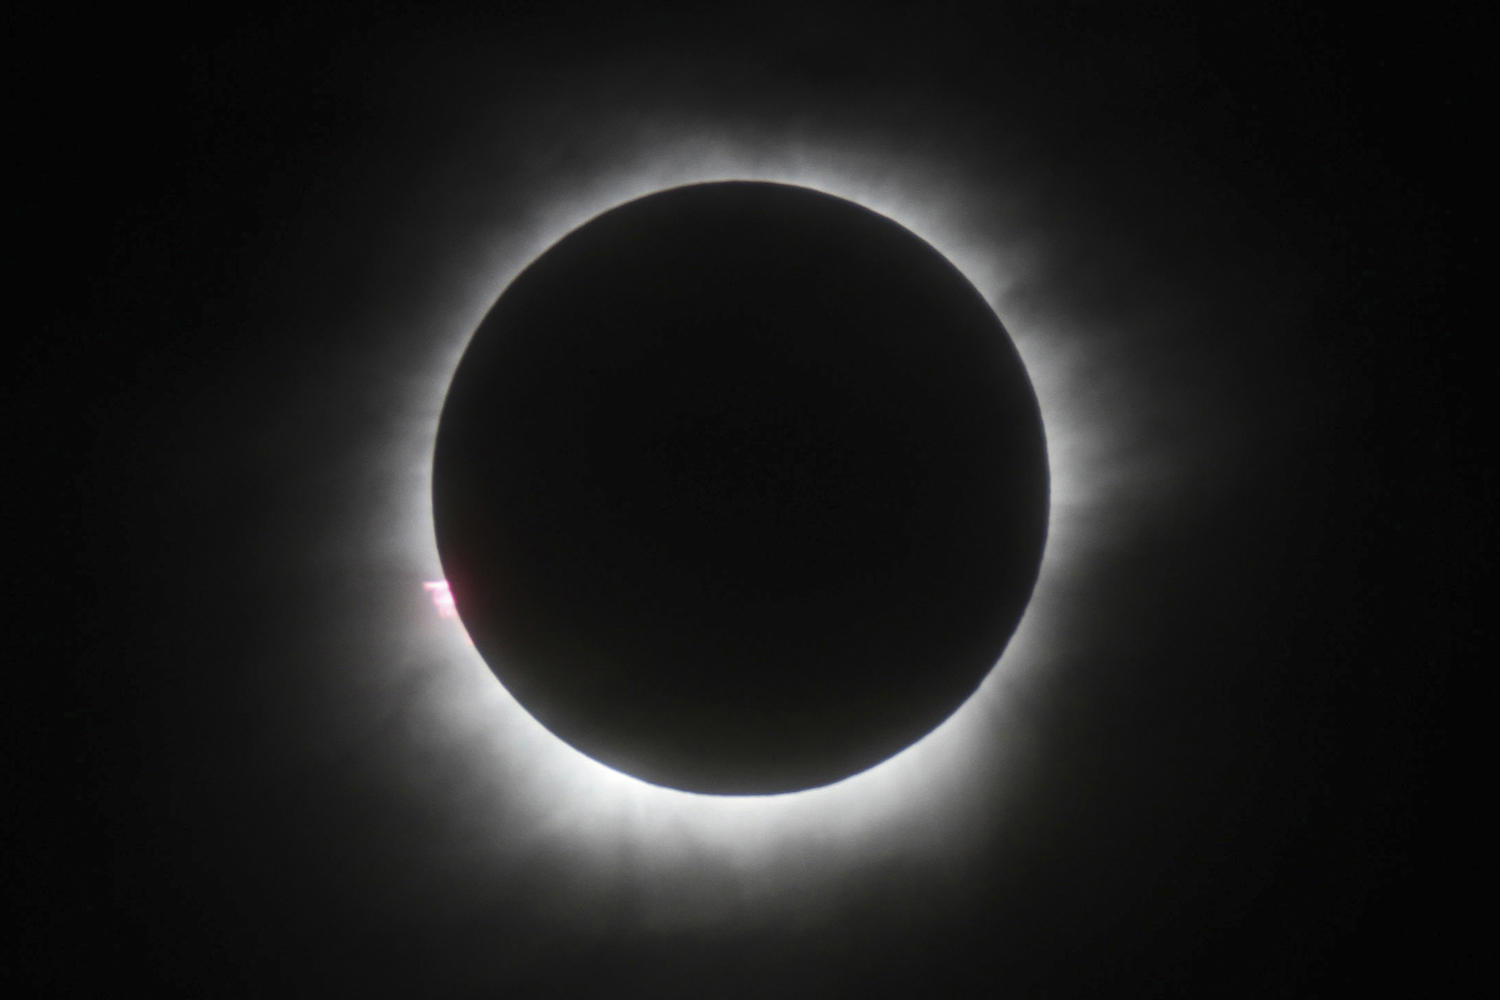 How to watch the eclipse without solar viewing glasses